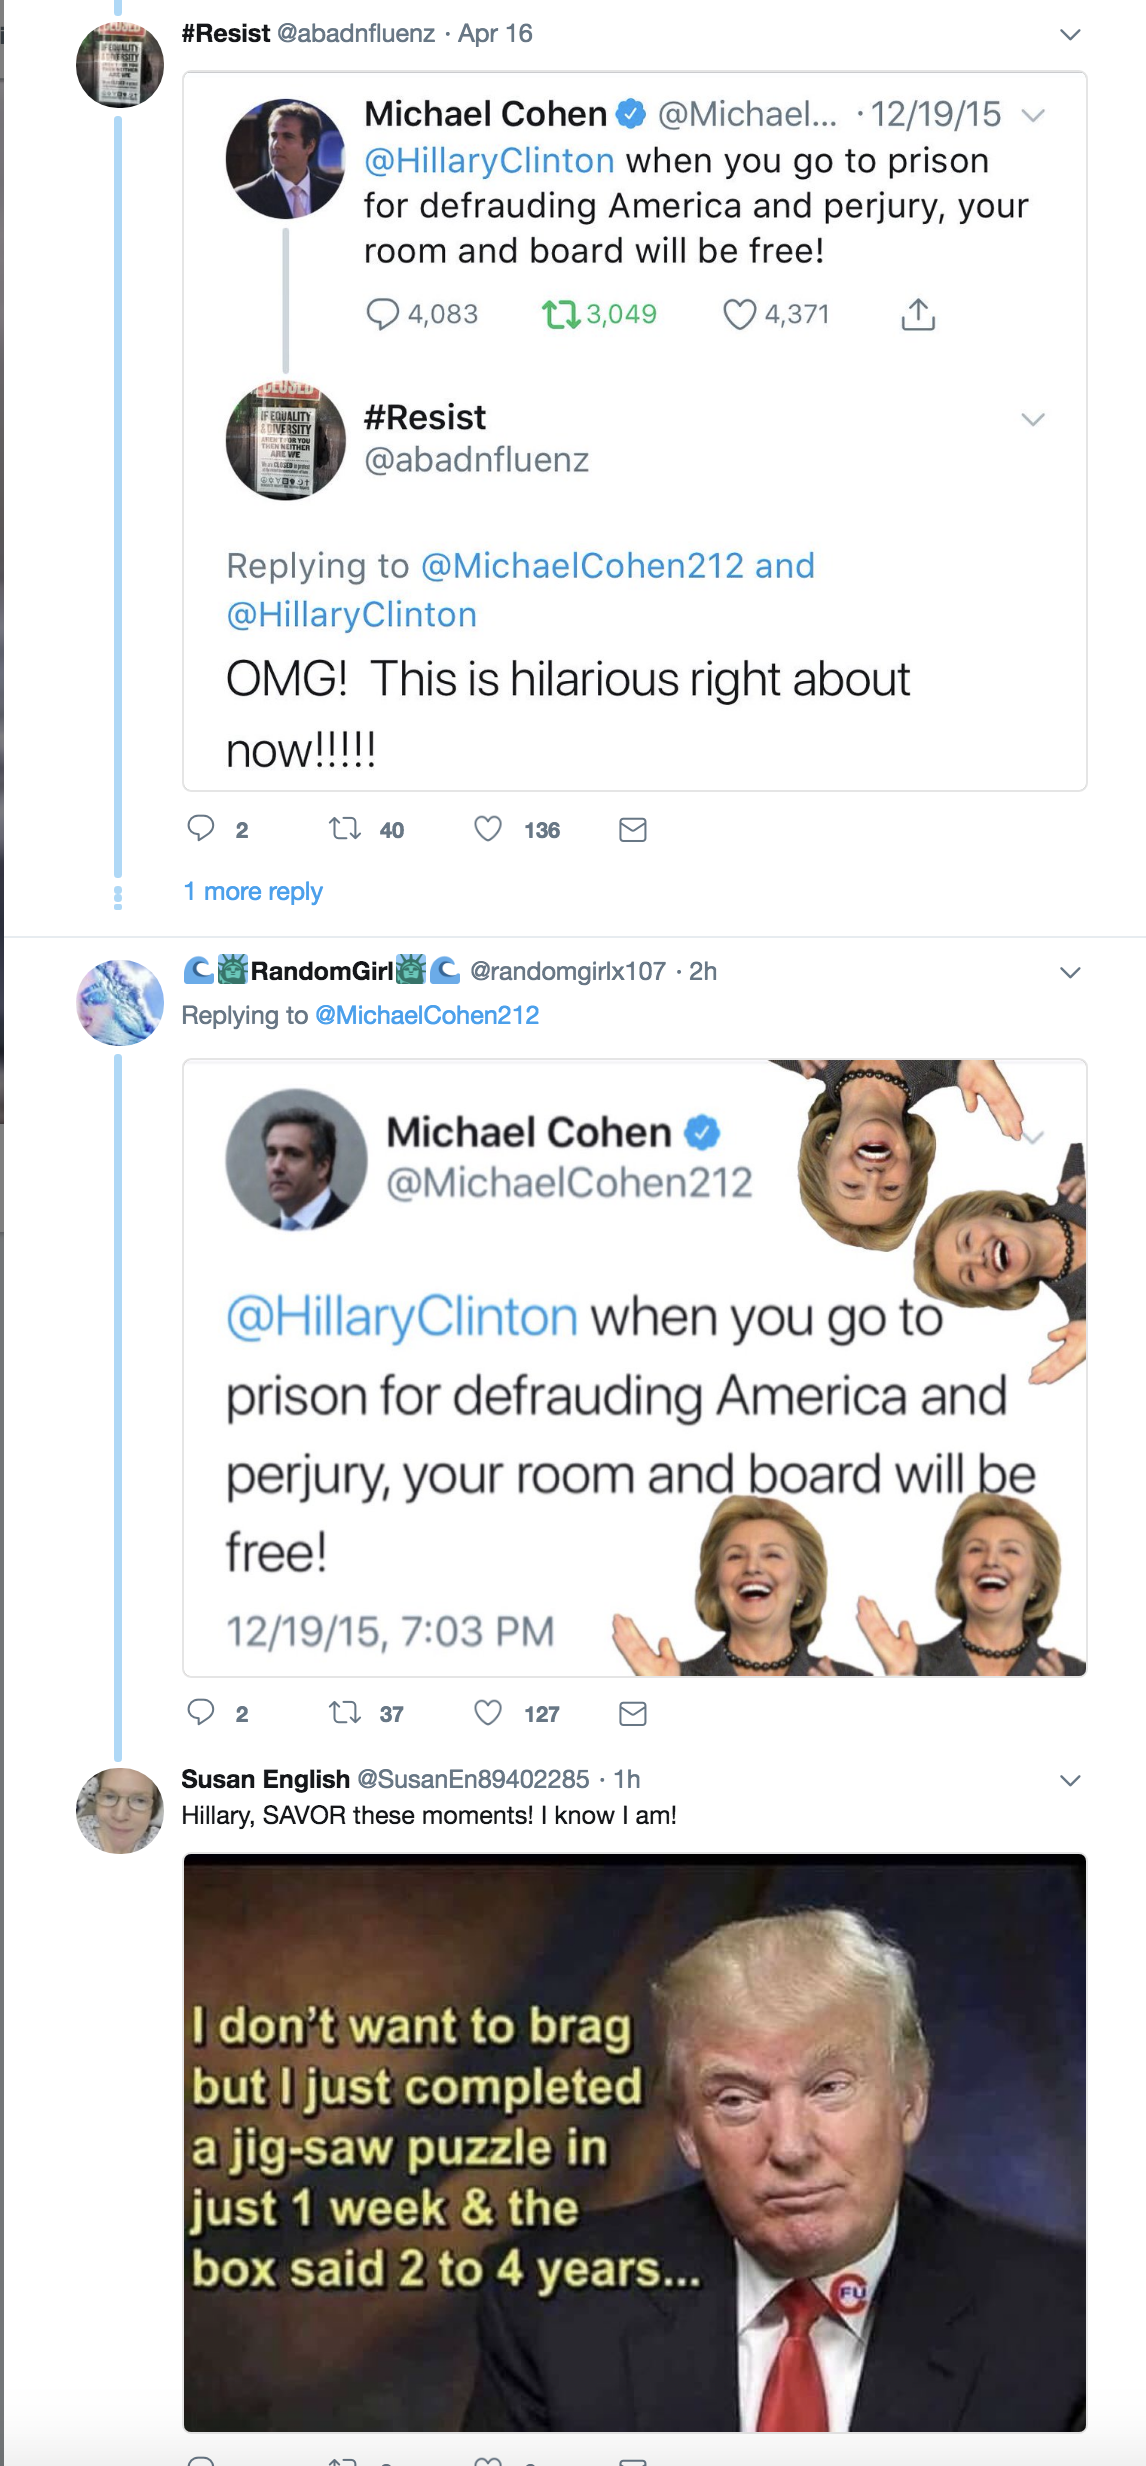 Screen-Shot-2018-08-21-at-4.08.41-PM Old Michael Cohen Tweet About Hillary Clinton Goes Viral Again In The Best Way Possible Celebrities Corruption Crime Donald Trump Election 2016 Politics Top Stories